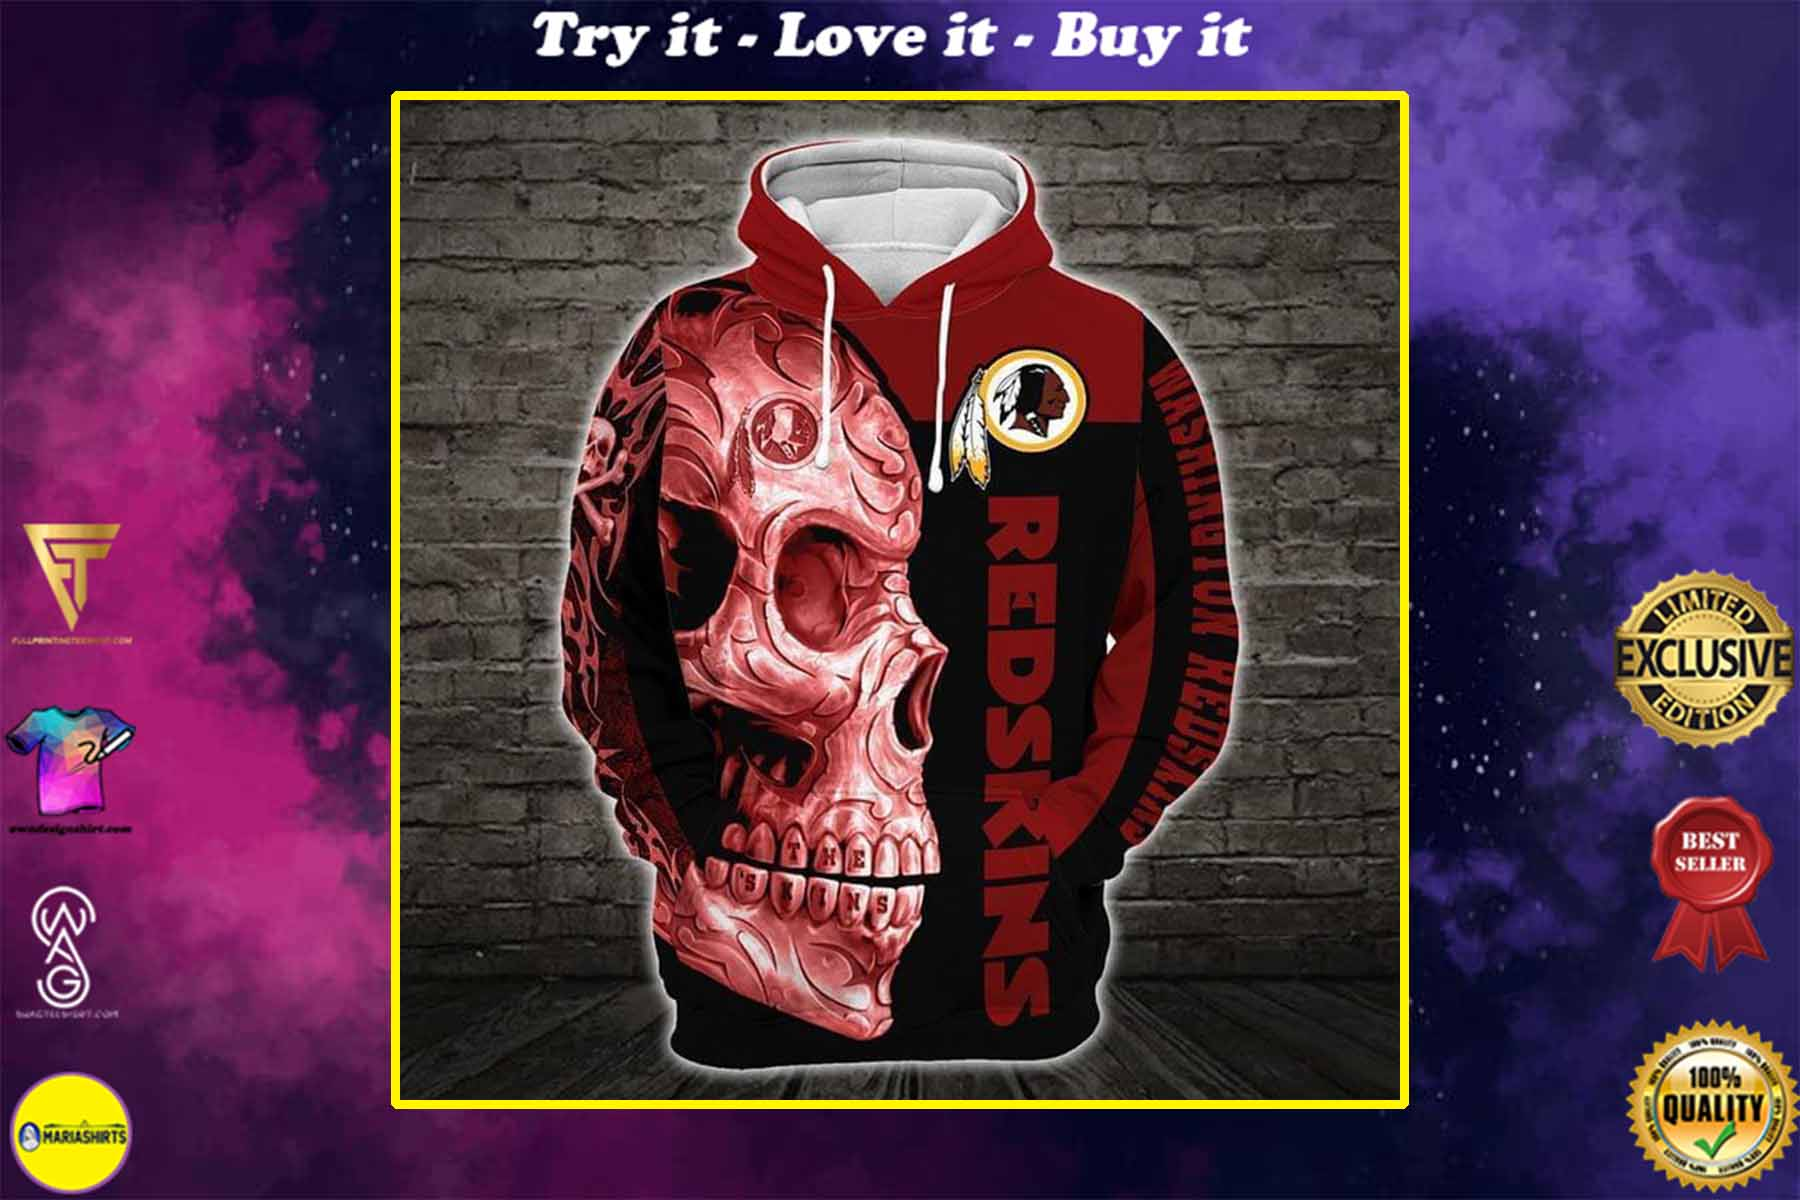 [highest selling] sugar skull washignton redskins football team full over printed shirt - maria